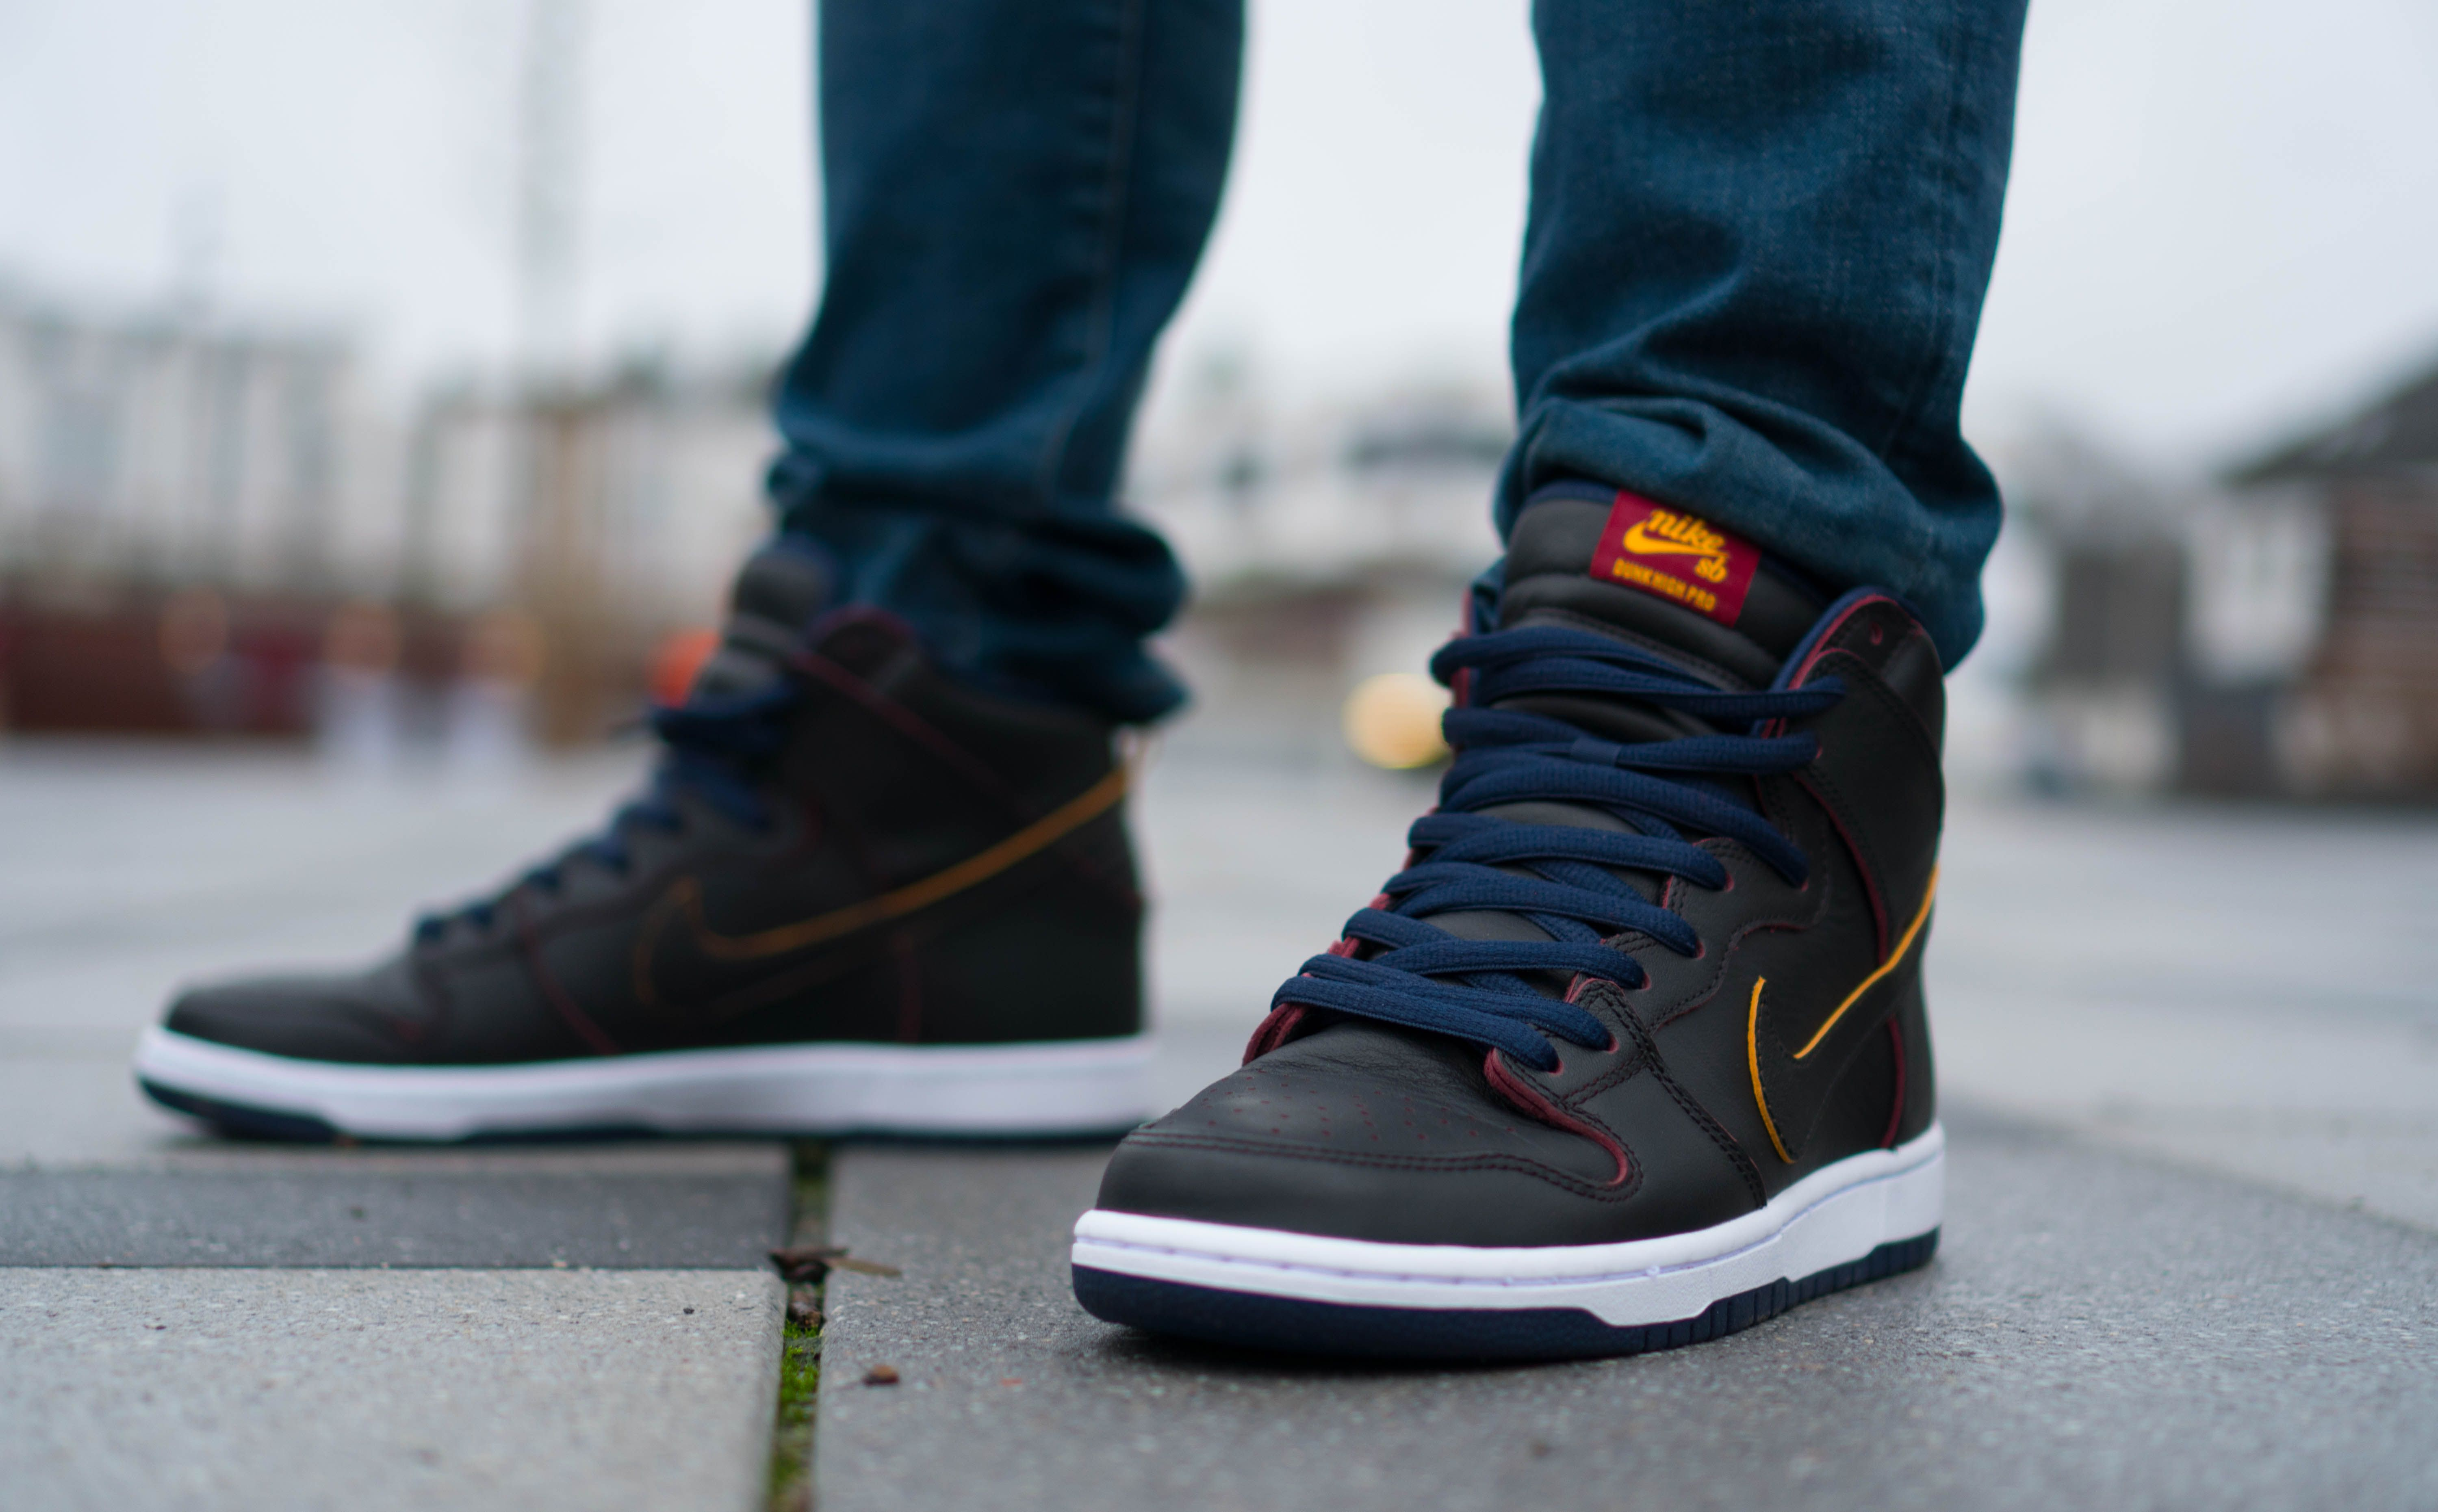 Nike SB Dunk High inspired by the Cleveland Cavaliers colors